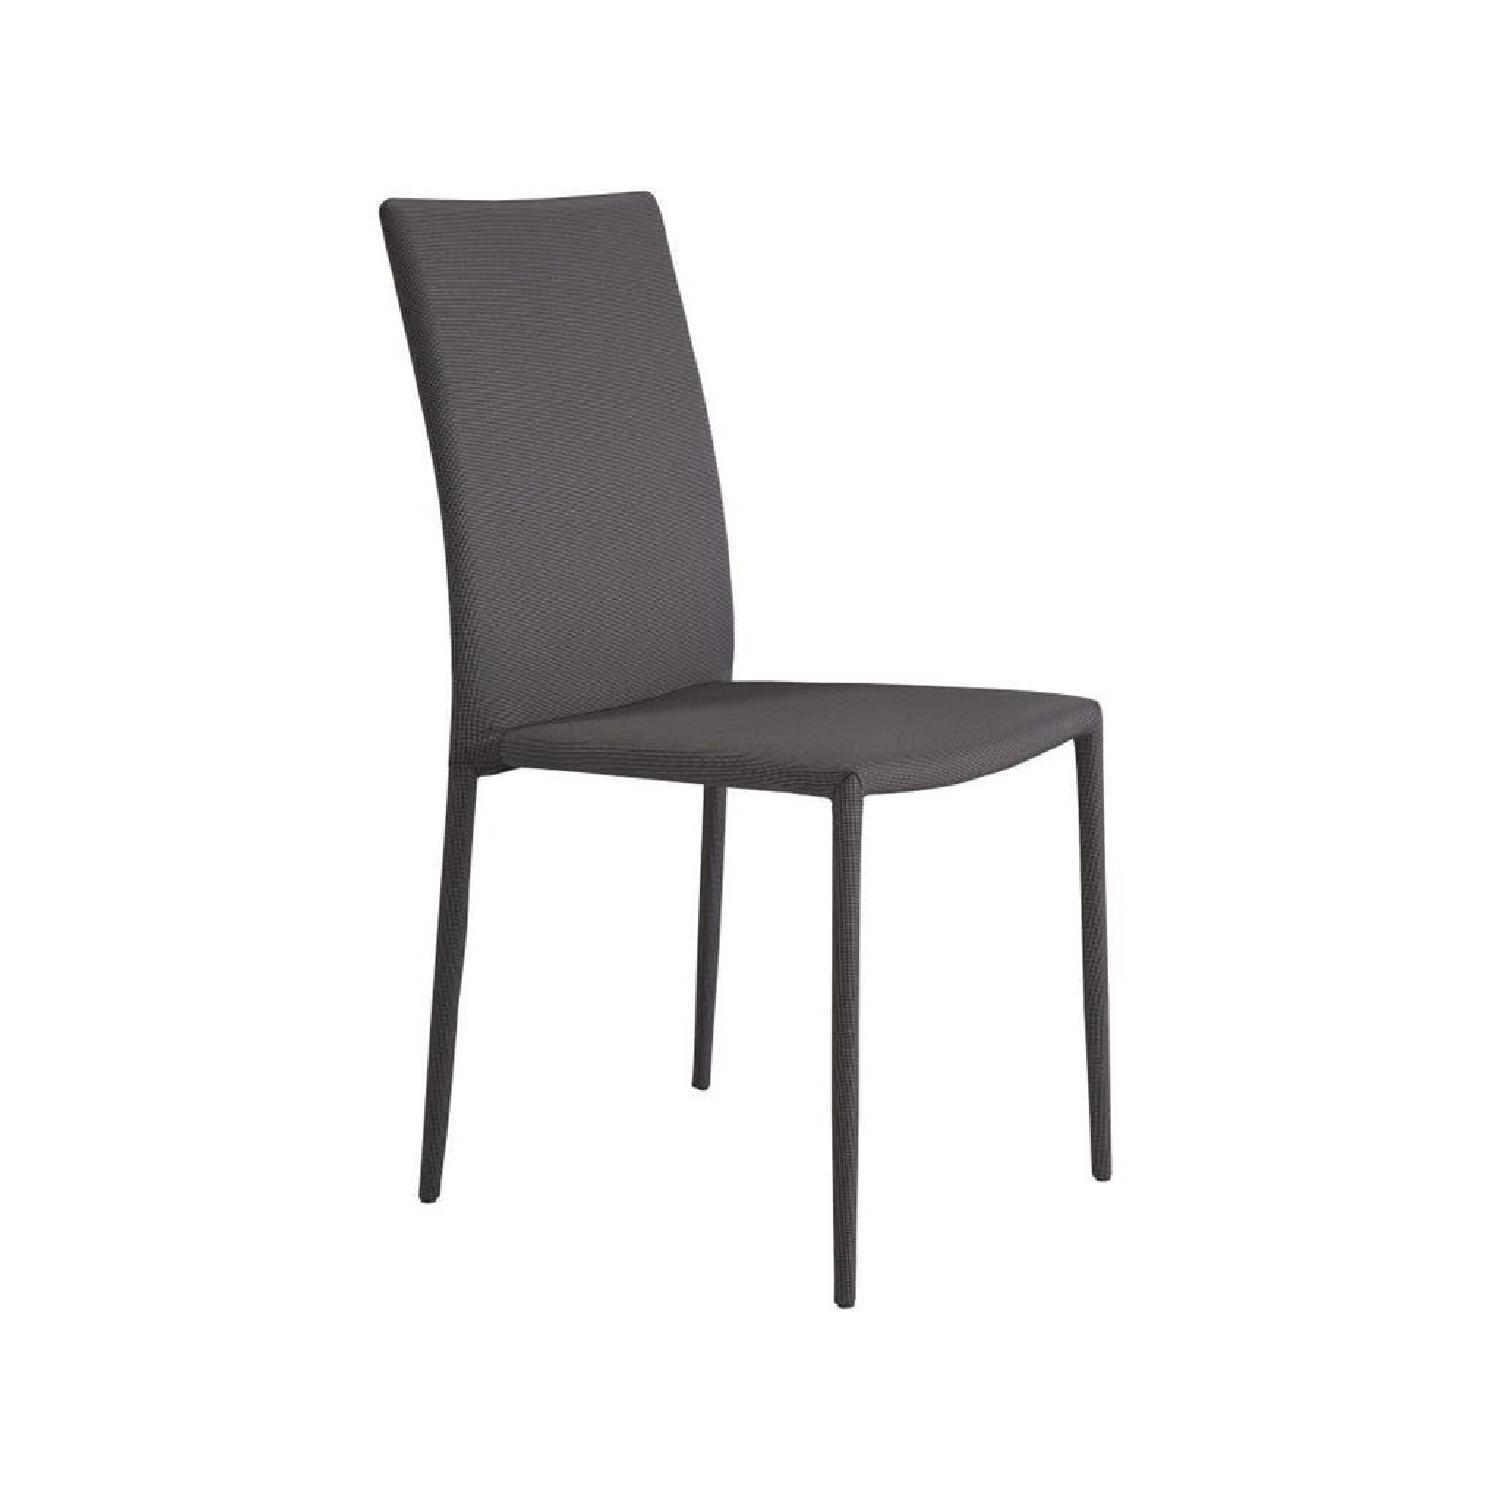 Gray & Black Dining Chair